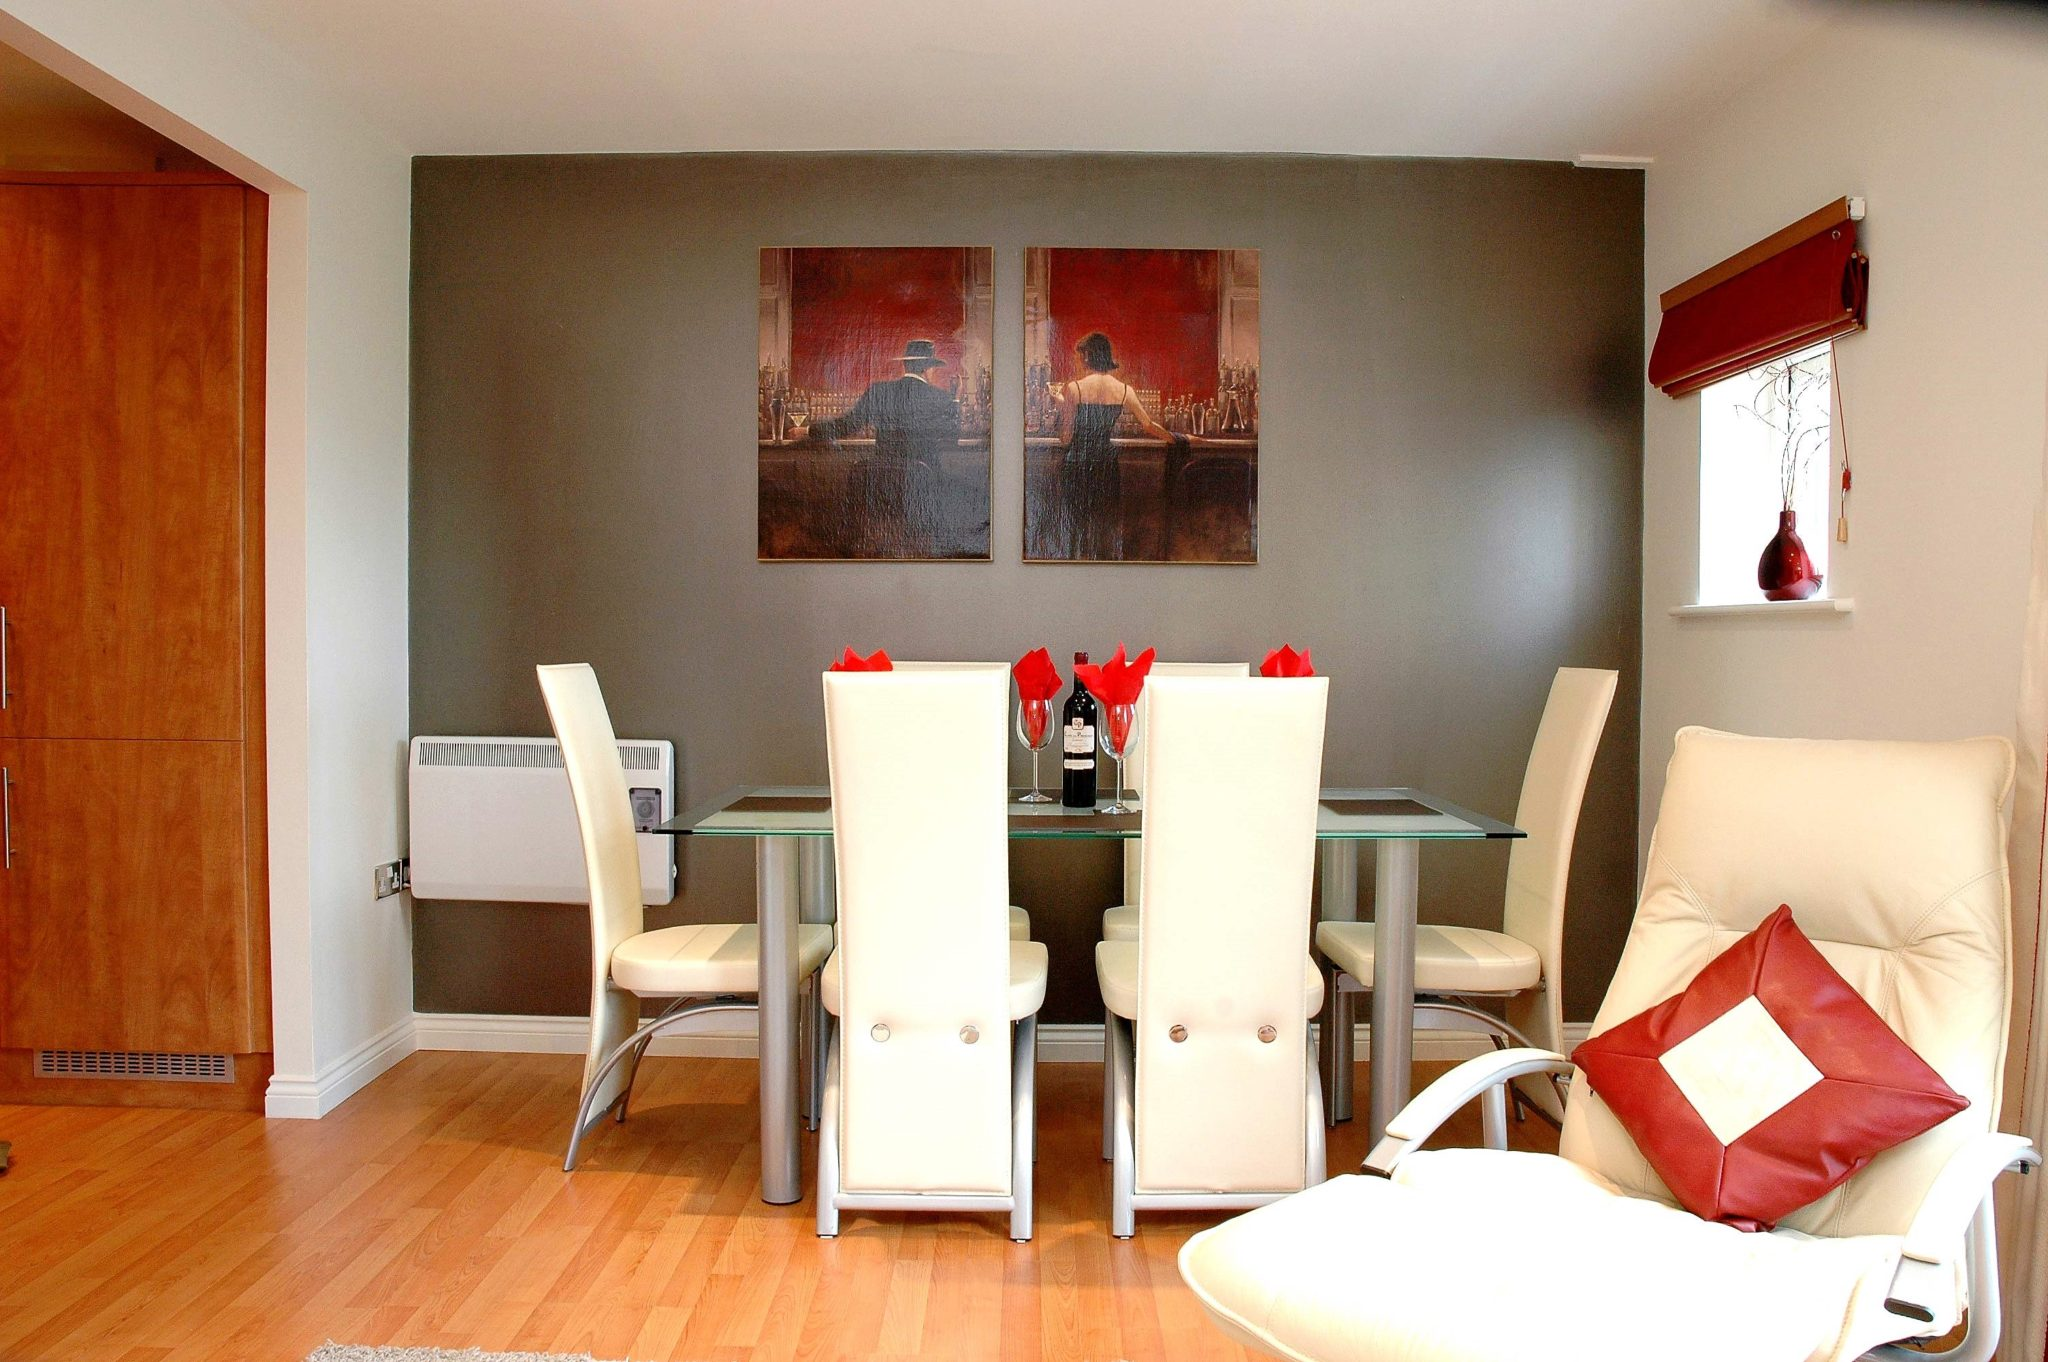 Book-Newcastle-Serviced-Accommodation-today-at-Low-Cost!-Curzon-Place-Apartments-offer-modern-Short-Lets-in-North-East-England!-Free-WIFI-&-Parking!